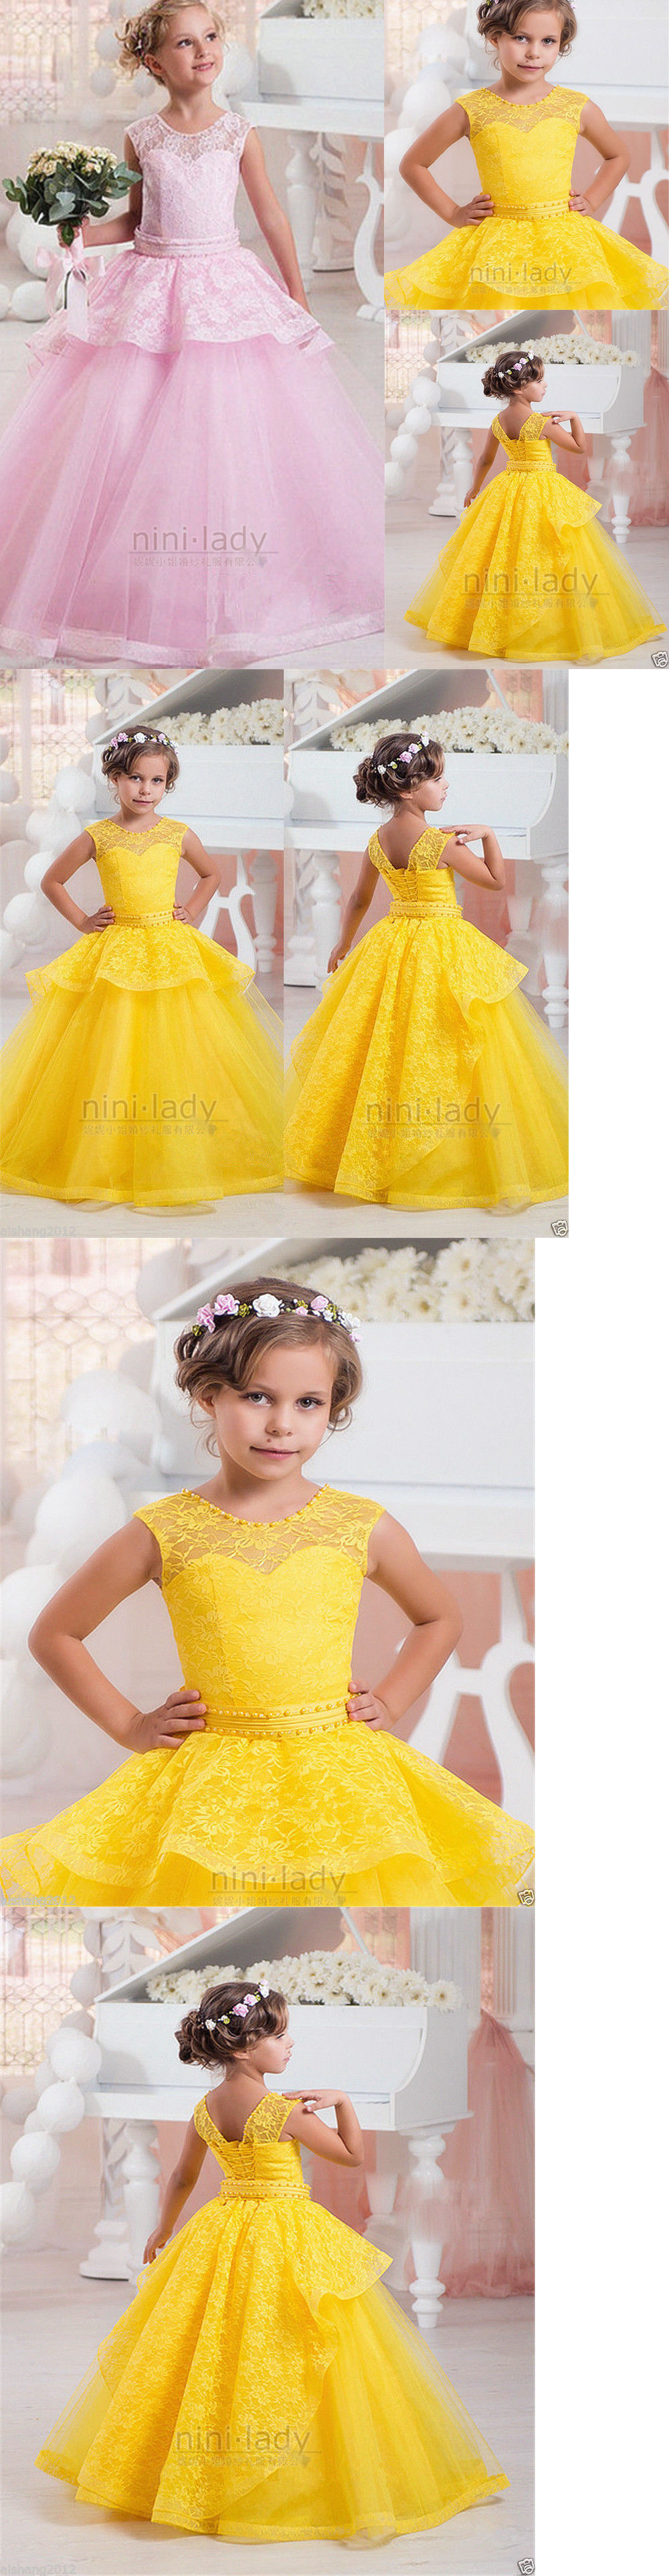 Girls formal occasion new flower girl dress communion party